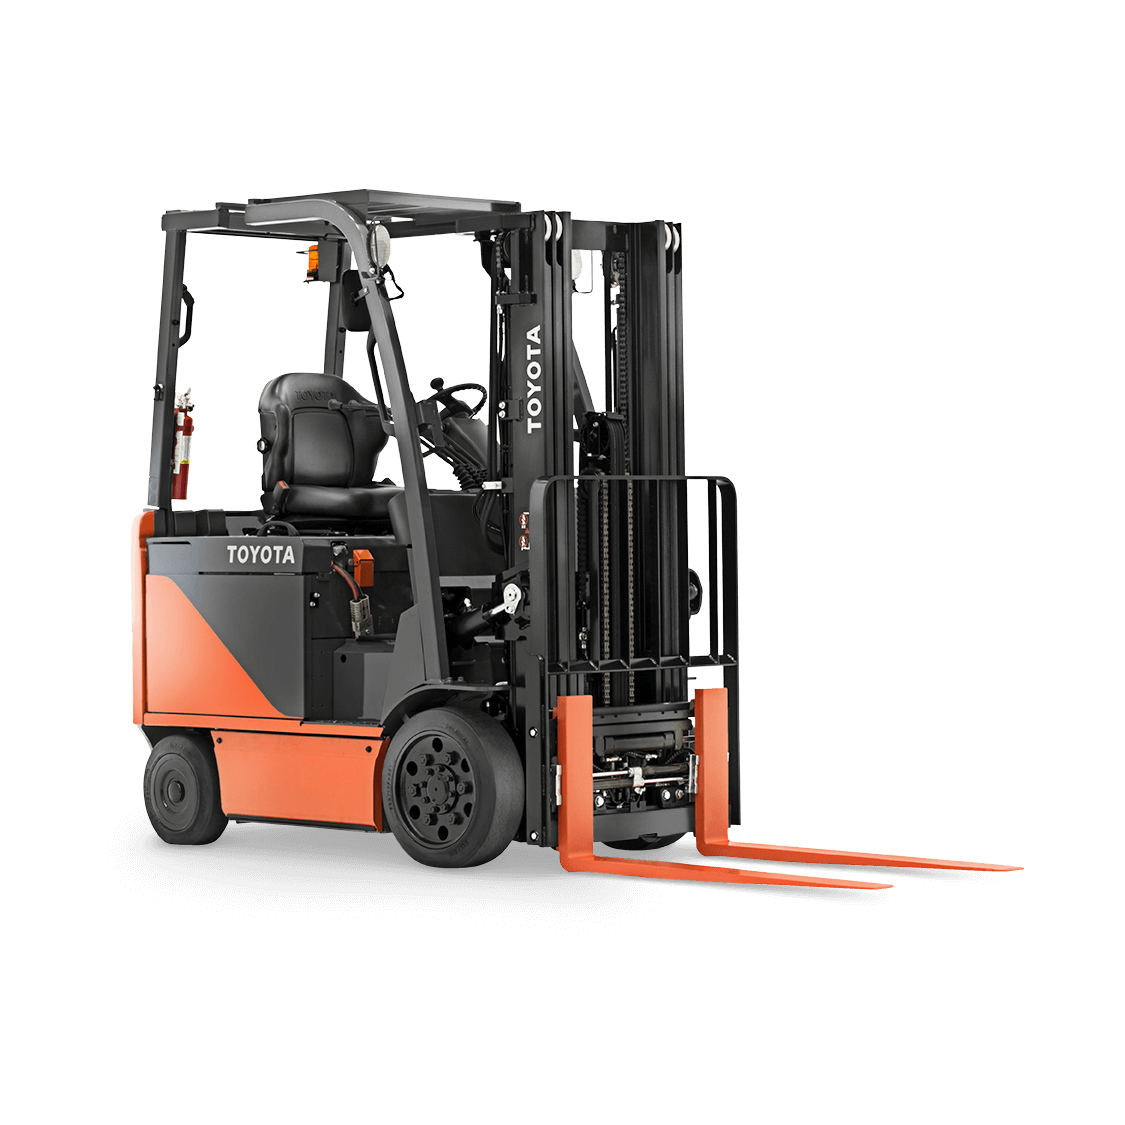 Toyota Core Electric Forklift Wd Matthews